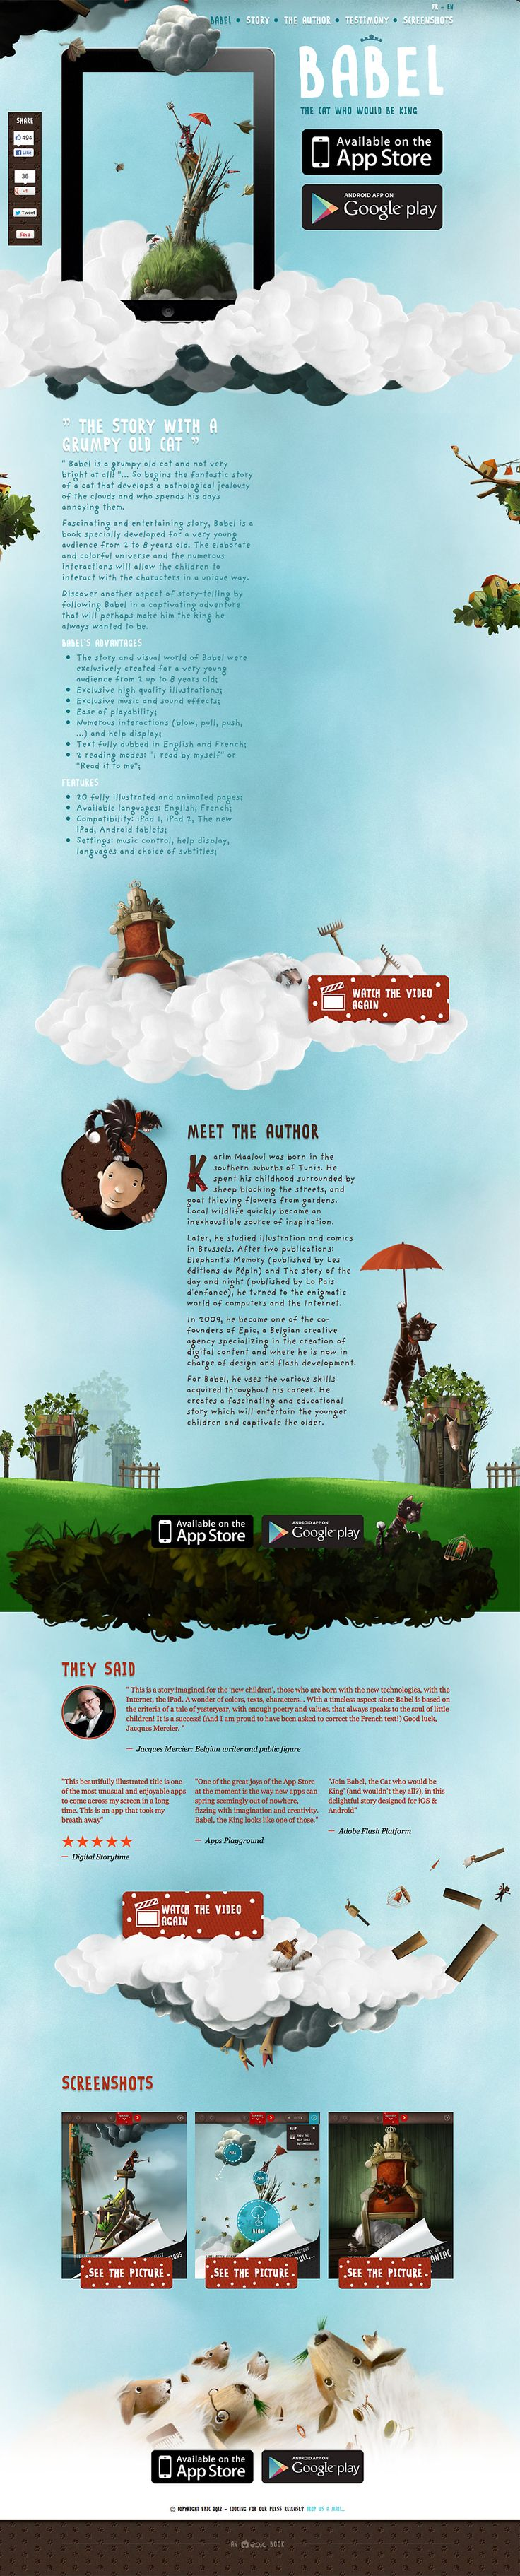 """Babel, the cat who would be king.""  Amazing app and website 